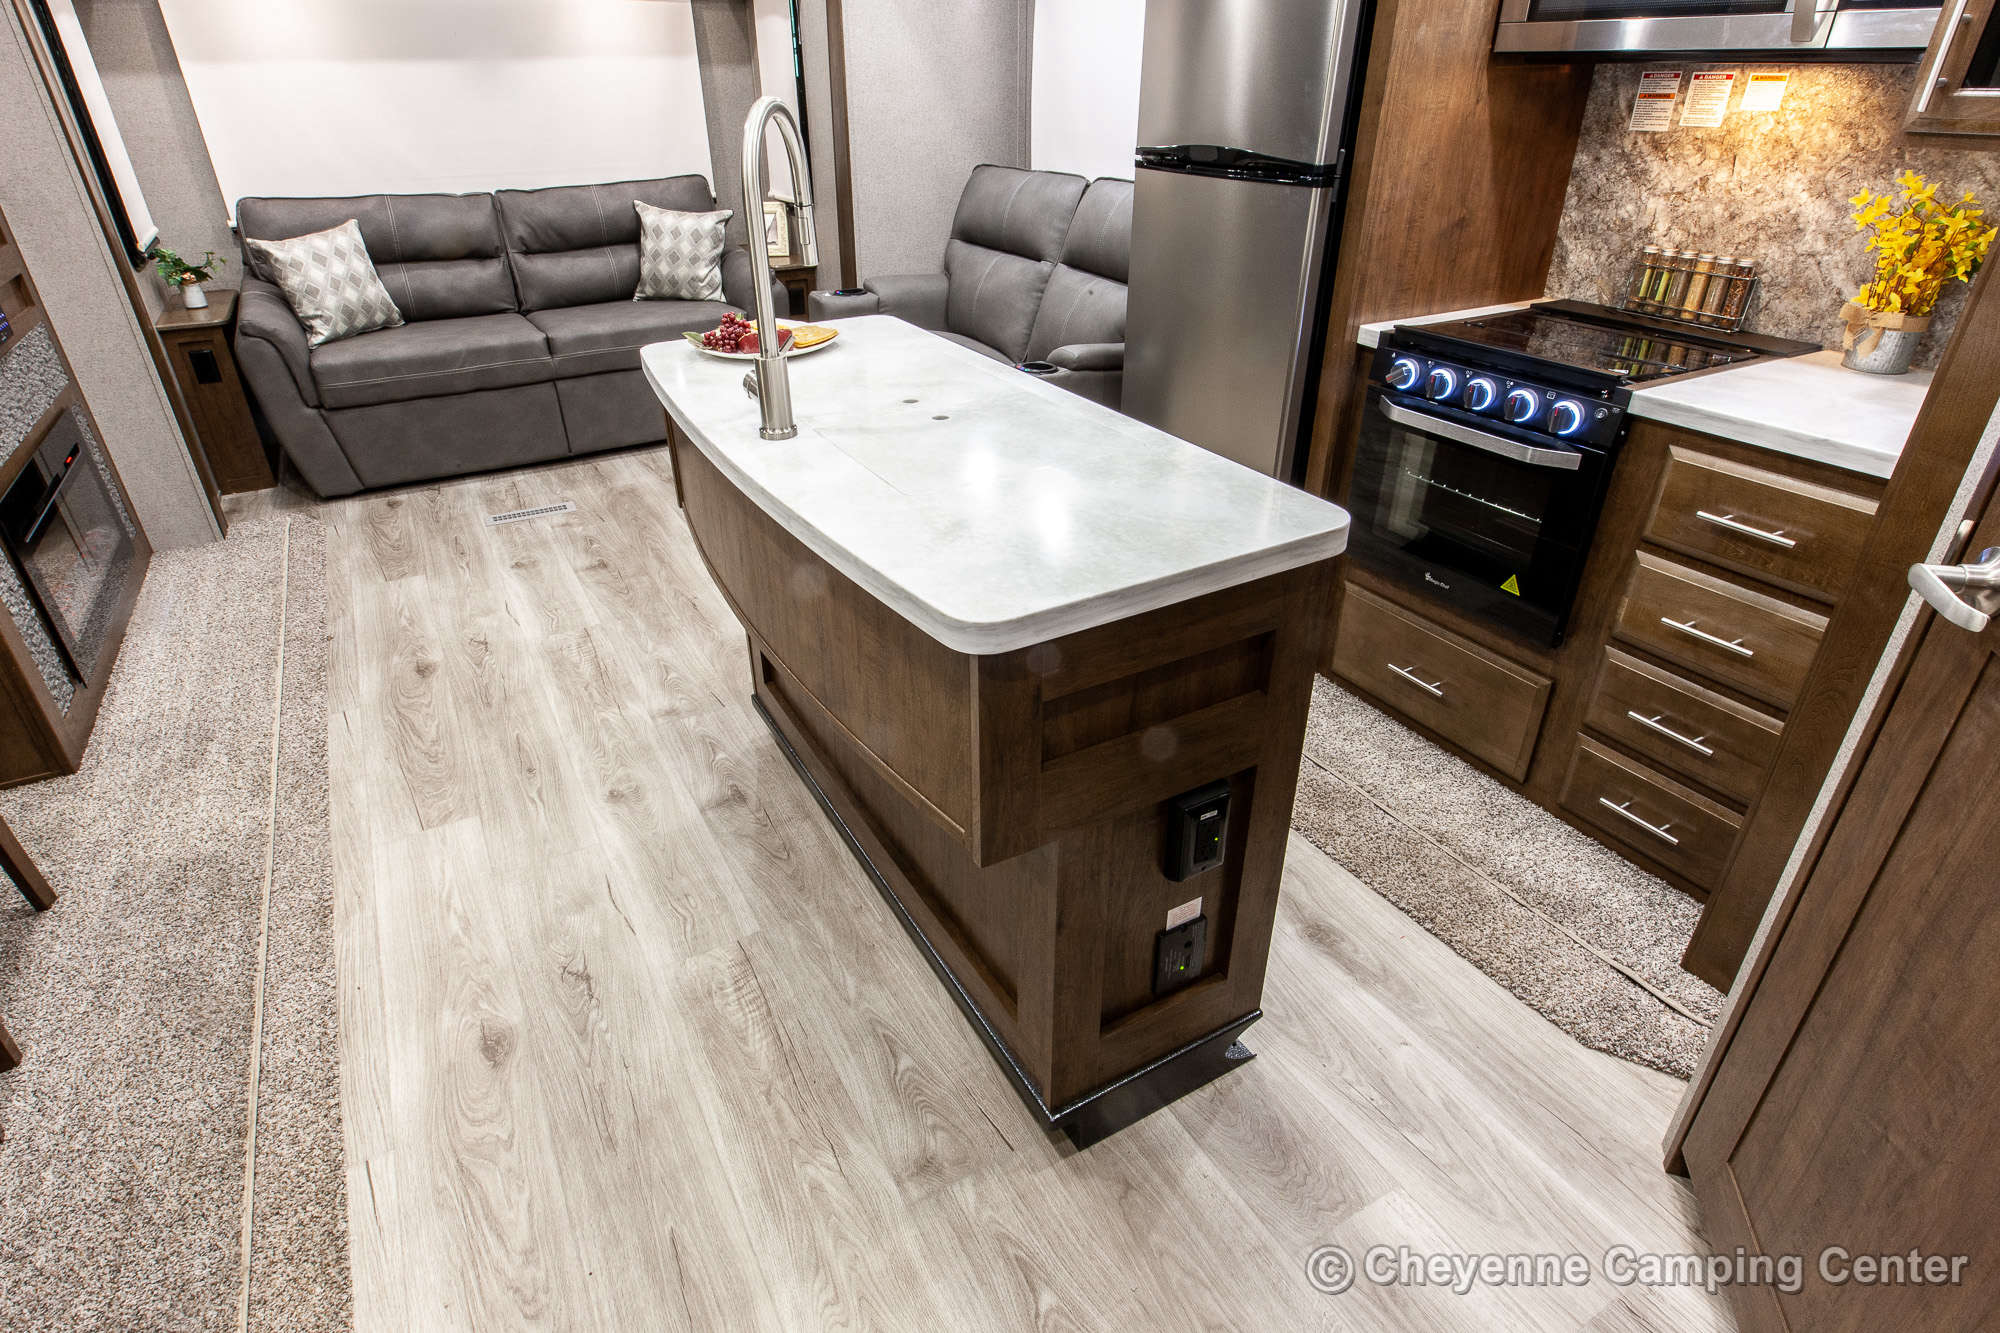 2021 Forest River Classic by Flagstaff 8529CSB Fifth Wheel Interior Image